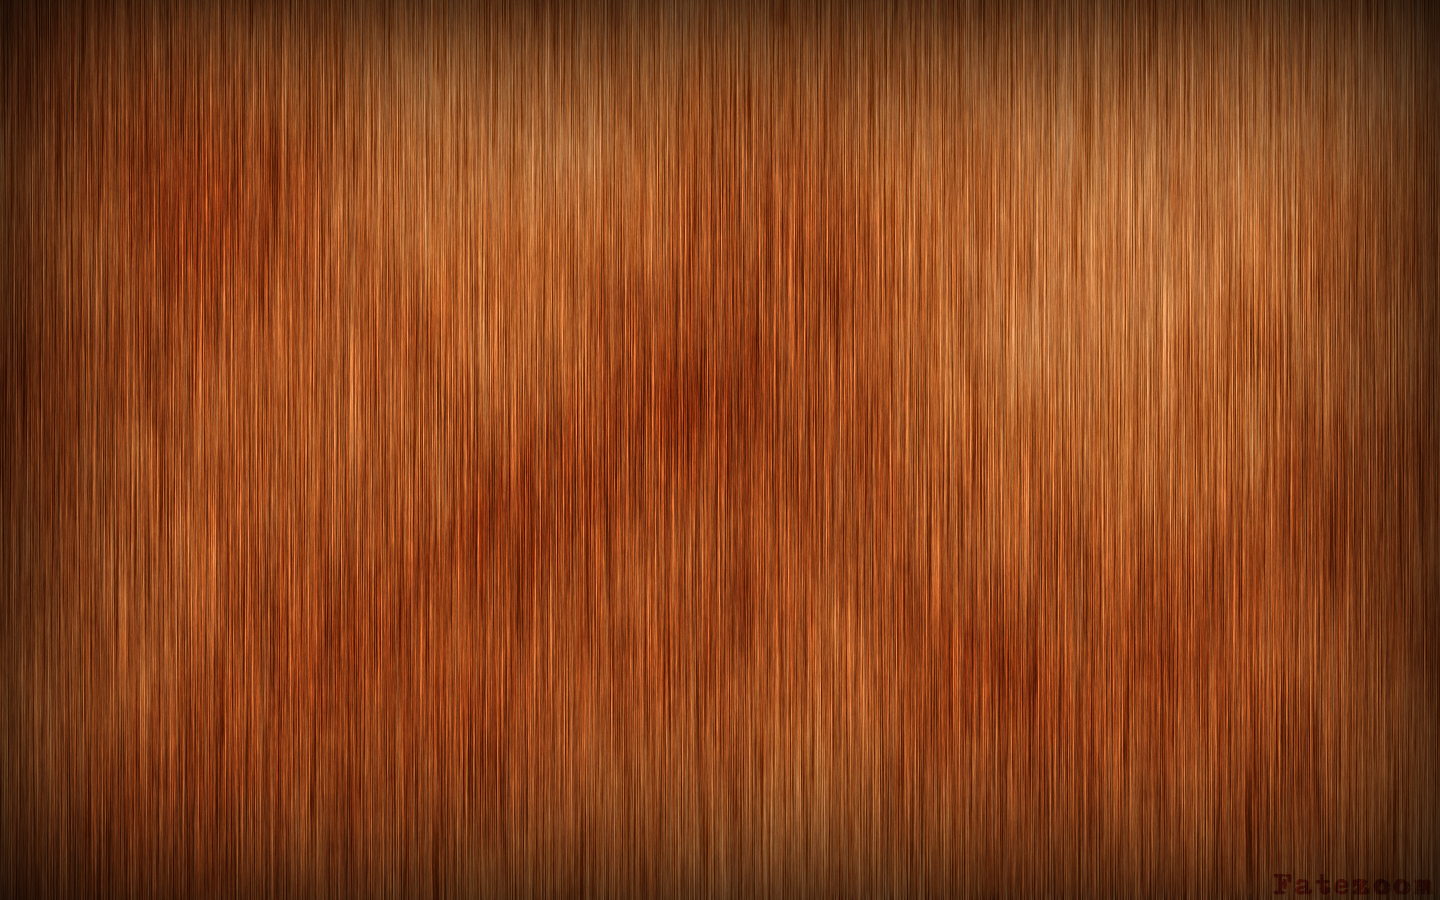 Wood Stripes from awesomewallpaperswordpresscom 1440 x 1050 1440x900